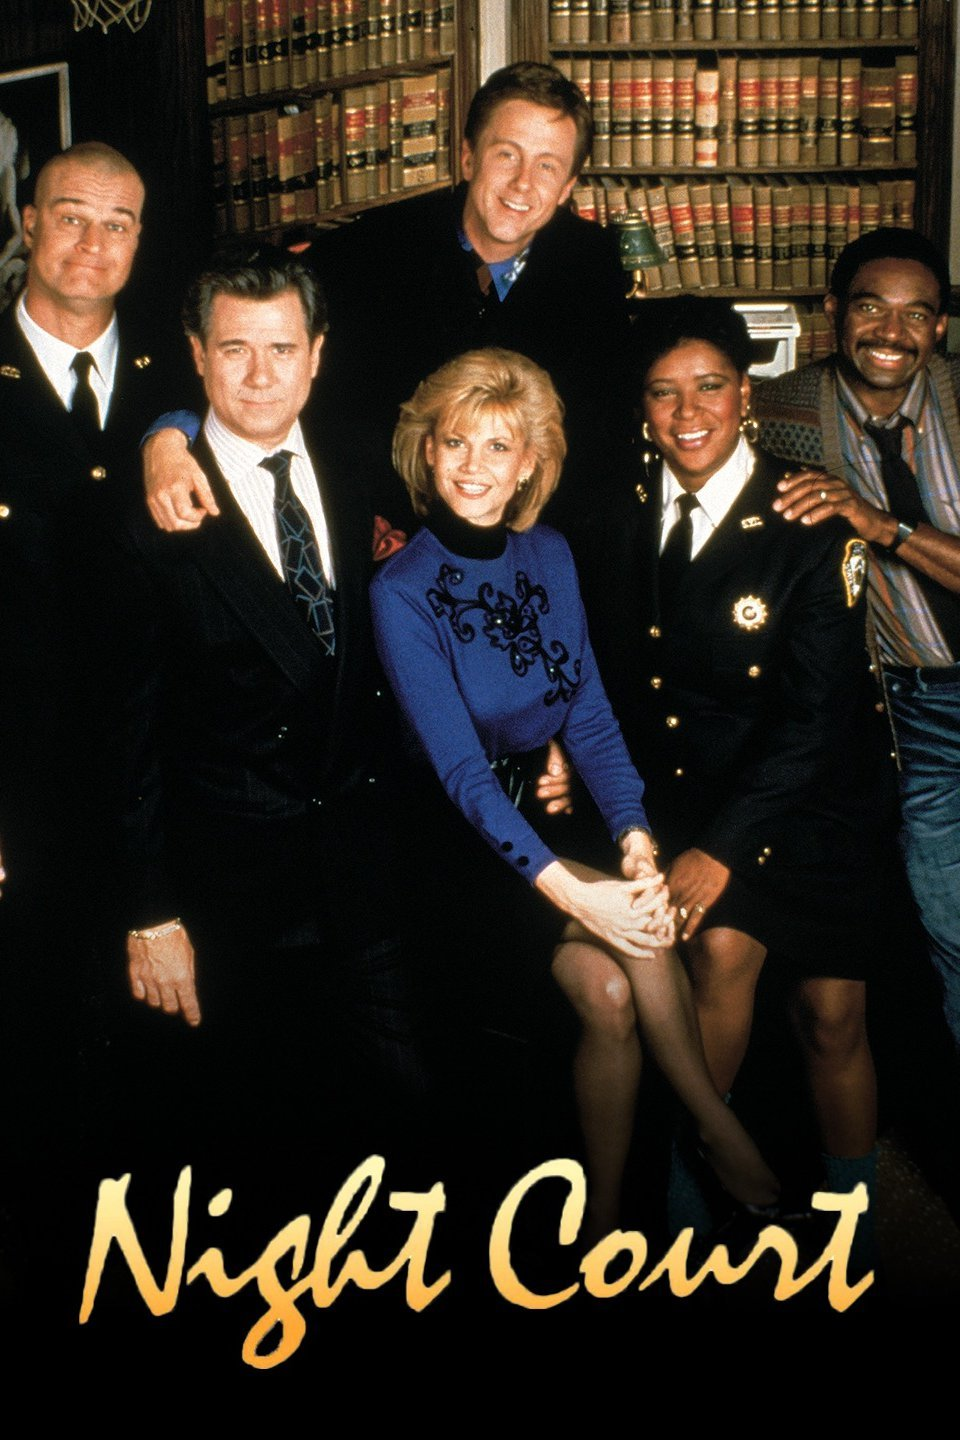 Night Court - I think most people are surprised when they realize that Night Court ran for 9 seasons from the 80's into the 90's. A great mix of smart and stupid humor made Night Court hold up to the test of time. Like Frasier though, the loss of one of it's main characters would leave a hole in the show. Harry Anderson or Judge Harry T. Stone passed away recently so they would need to find someone else to hold the gavel. Replacing the irreplaceable is…difficult to say the least but I'd love to see who the could come up with. I'd also love to see Larroquette back on television.